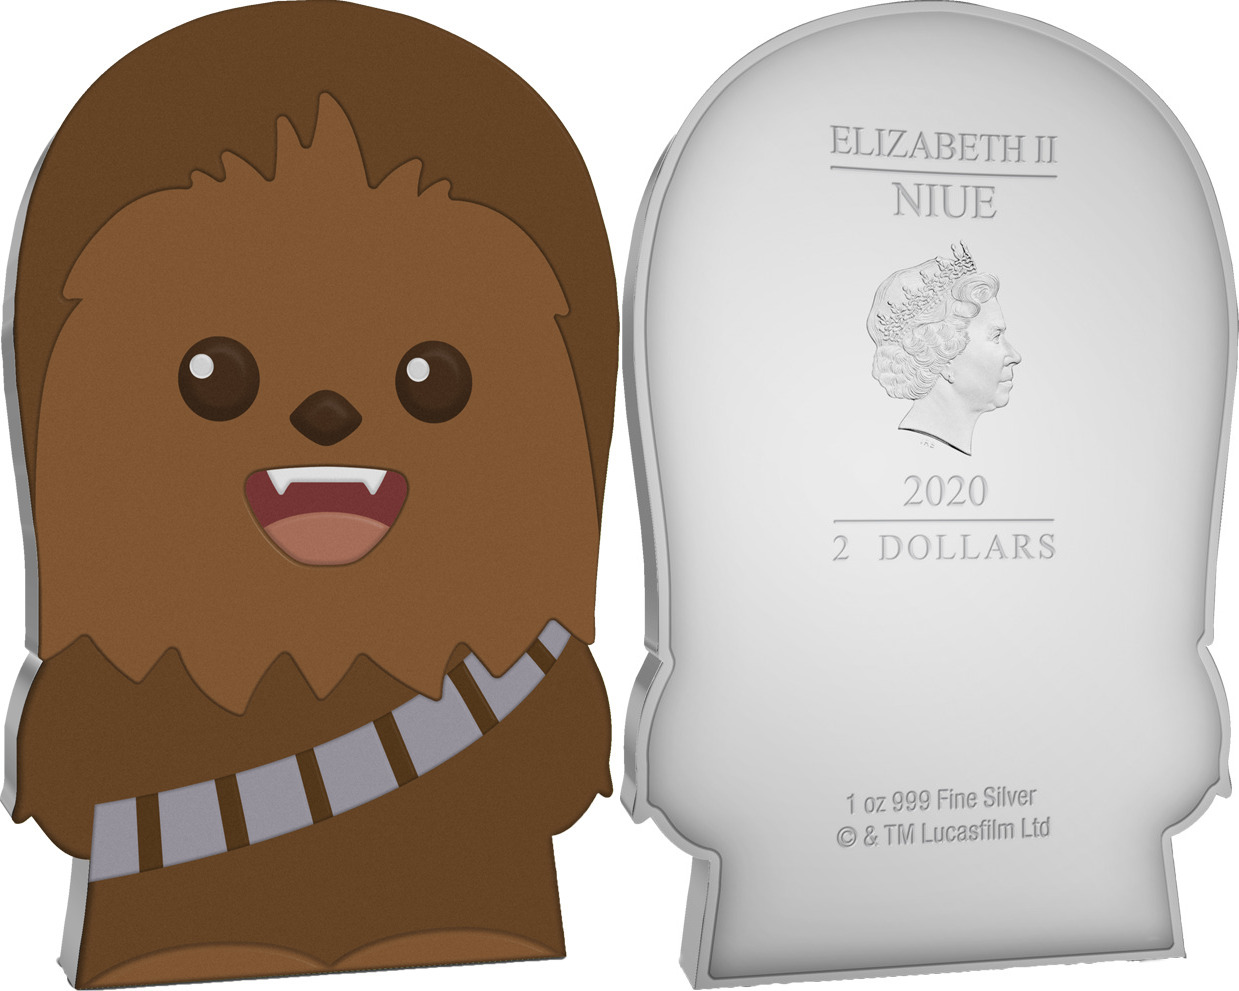 niue-2020-chibi-star-wars-chewbacca